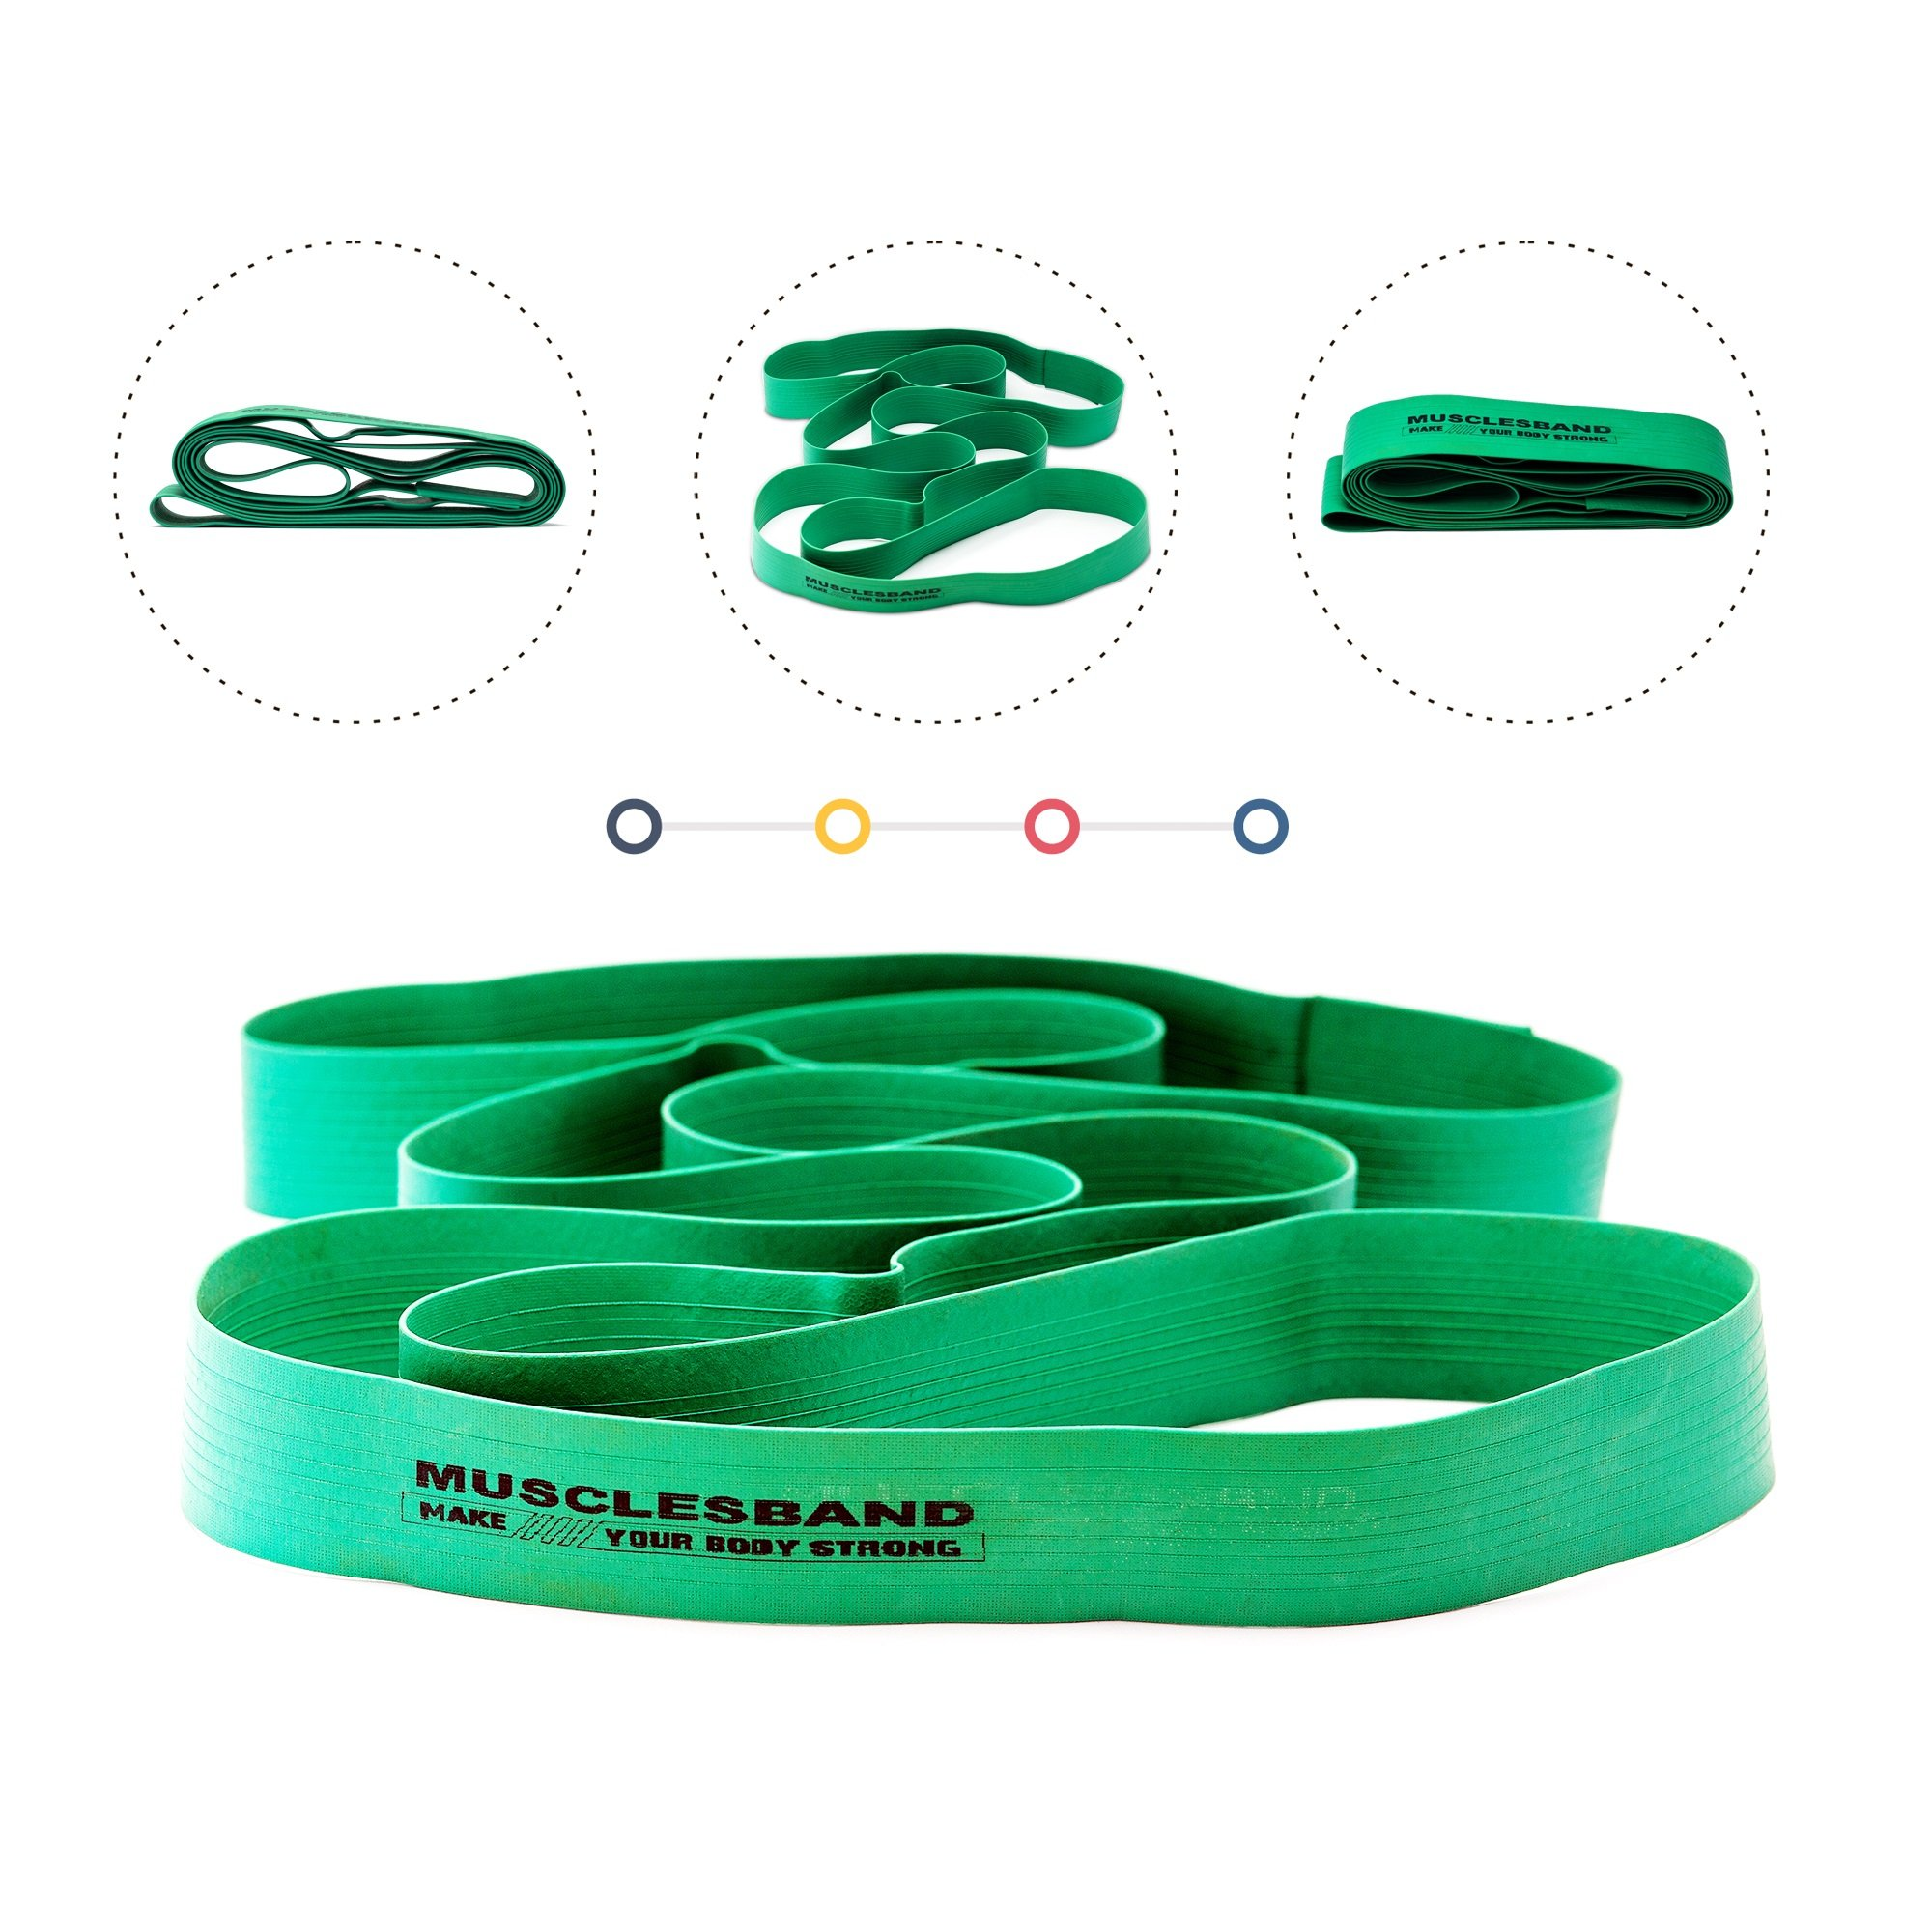 Stretch Band - Yoga band - Ballet band - Training band - Pilates band - Dance bands - Strength bands - Gymnastics bands - Resistance stretch rubber band for women men kids daily exercise and workout